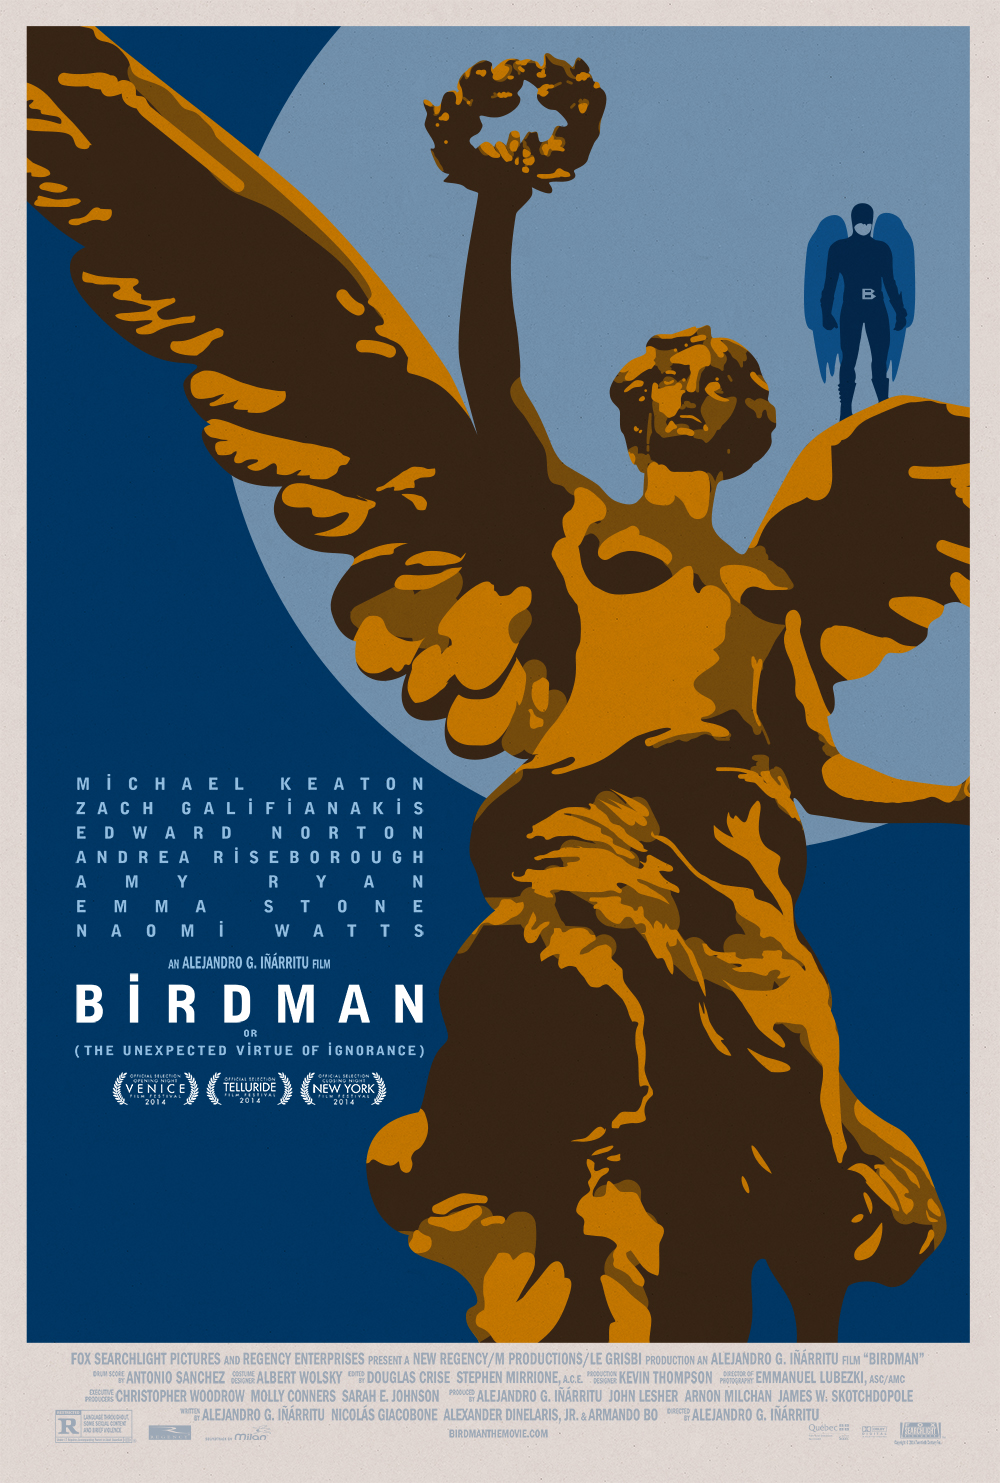 BIRDMAN_INT_Mexico_FF_POSTER_09.18.14_low